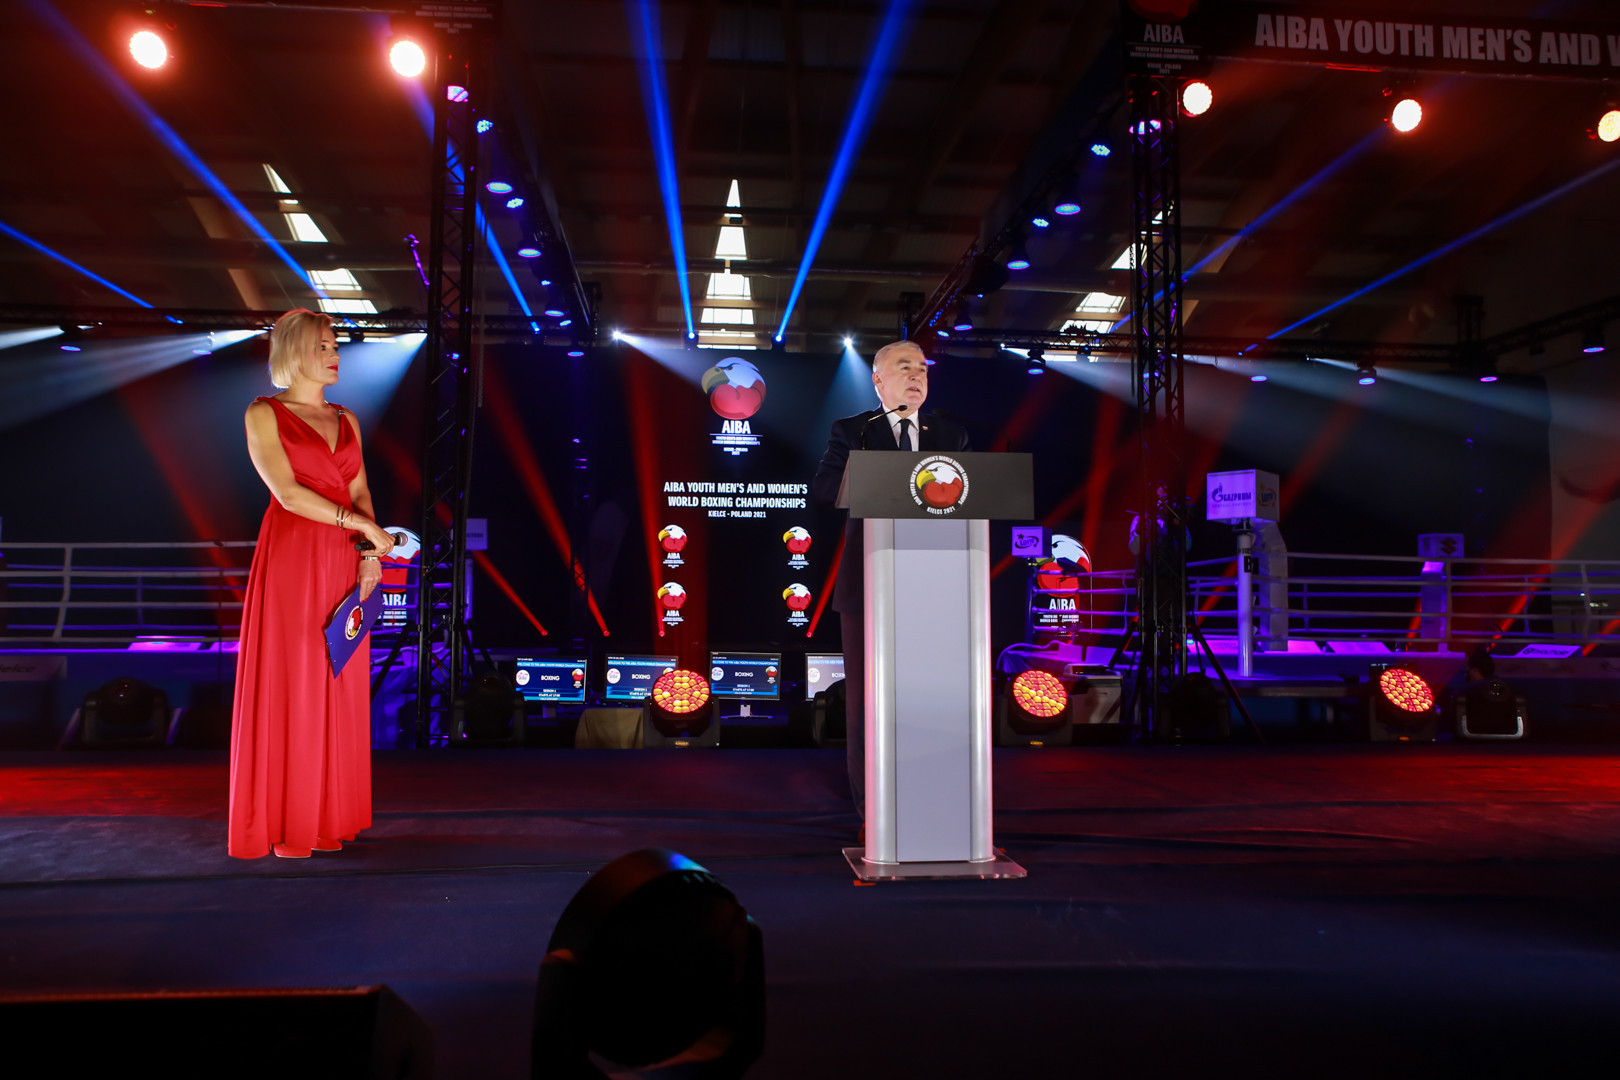 Poland's Sports Minister  Anna Krupka, left, and Polish Boxing Association President Grzegorz Nowaczek, right, were also among to take part in the Opening Ceremony ©AIBA